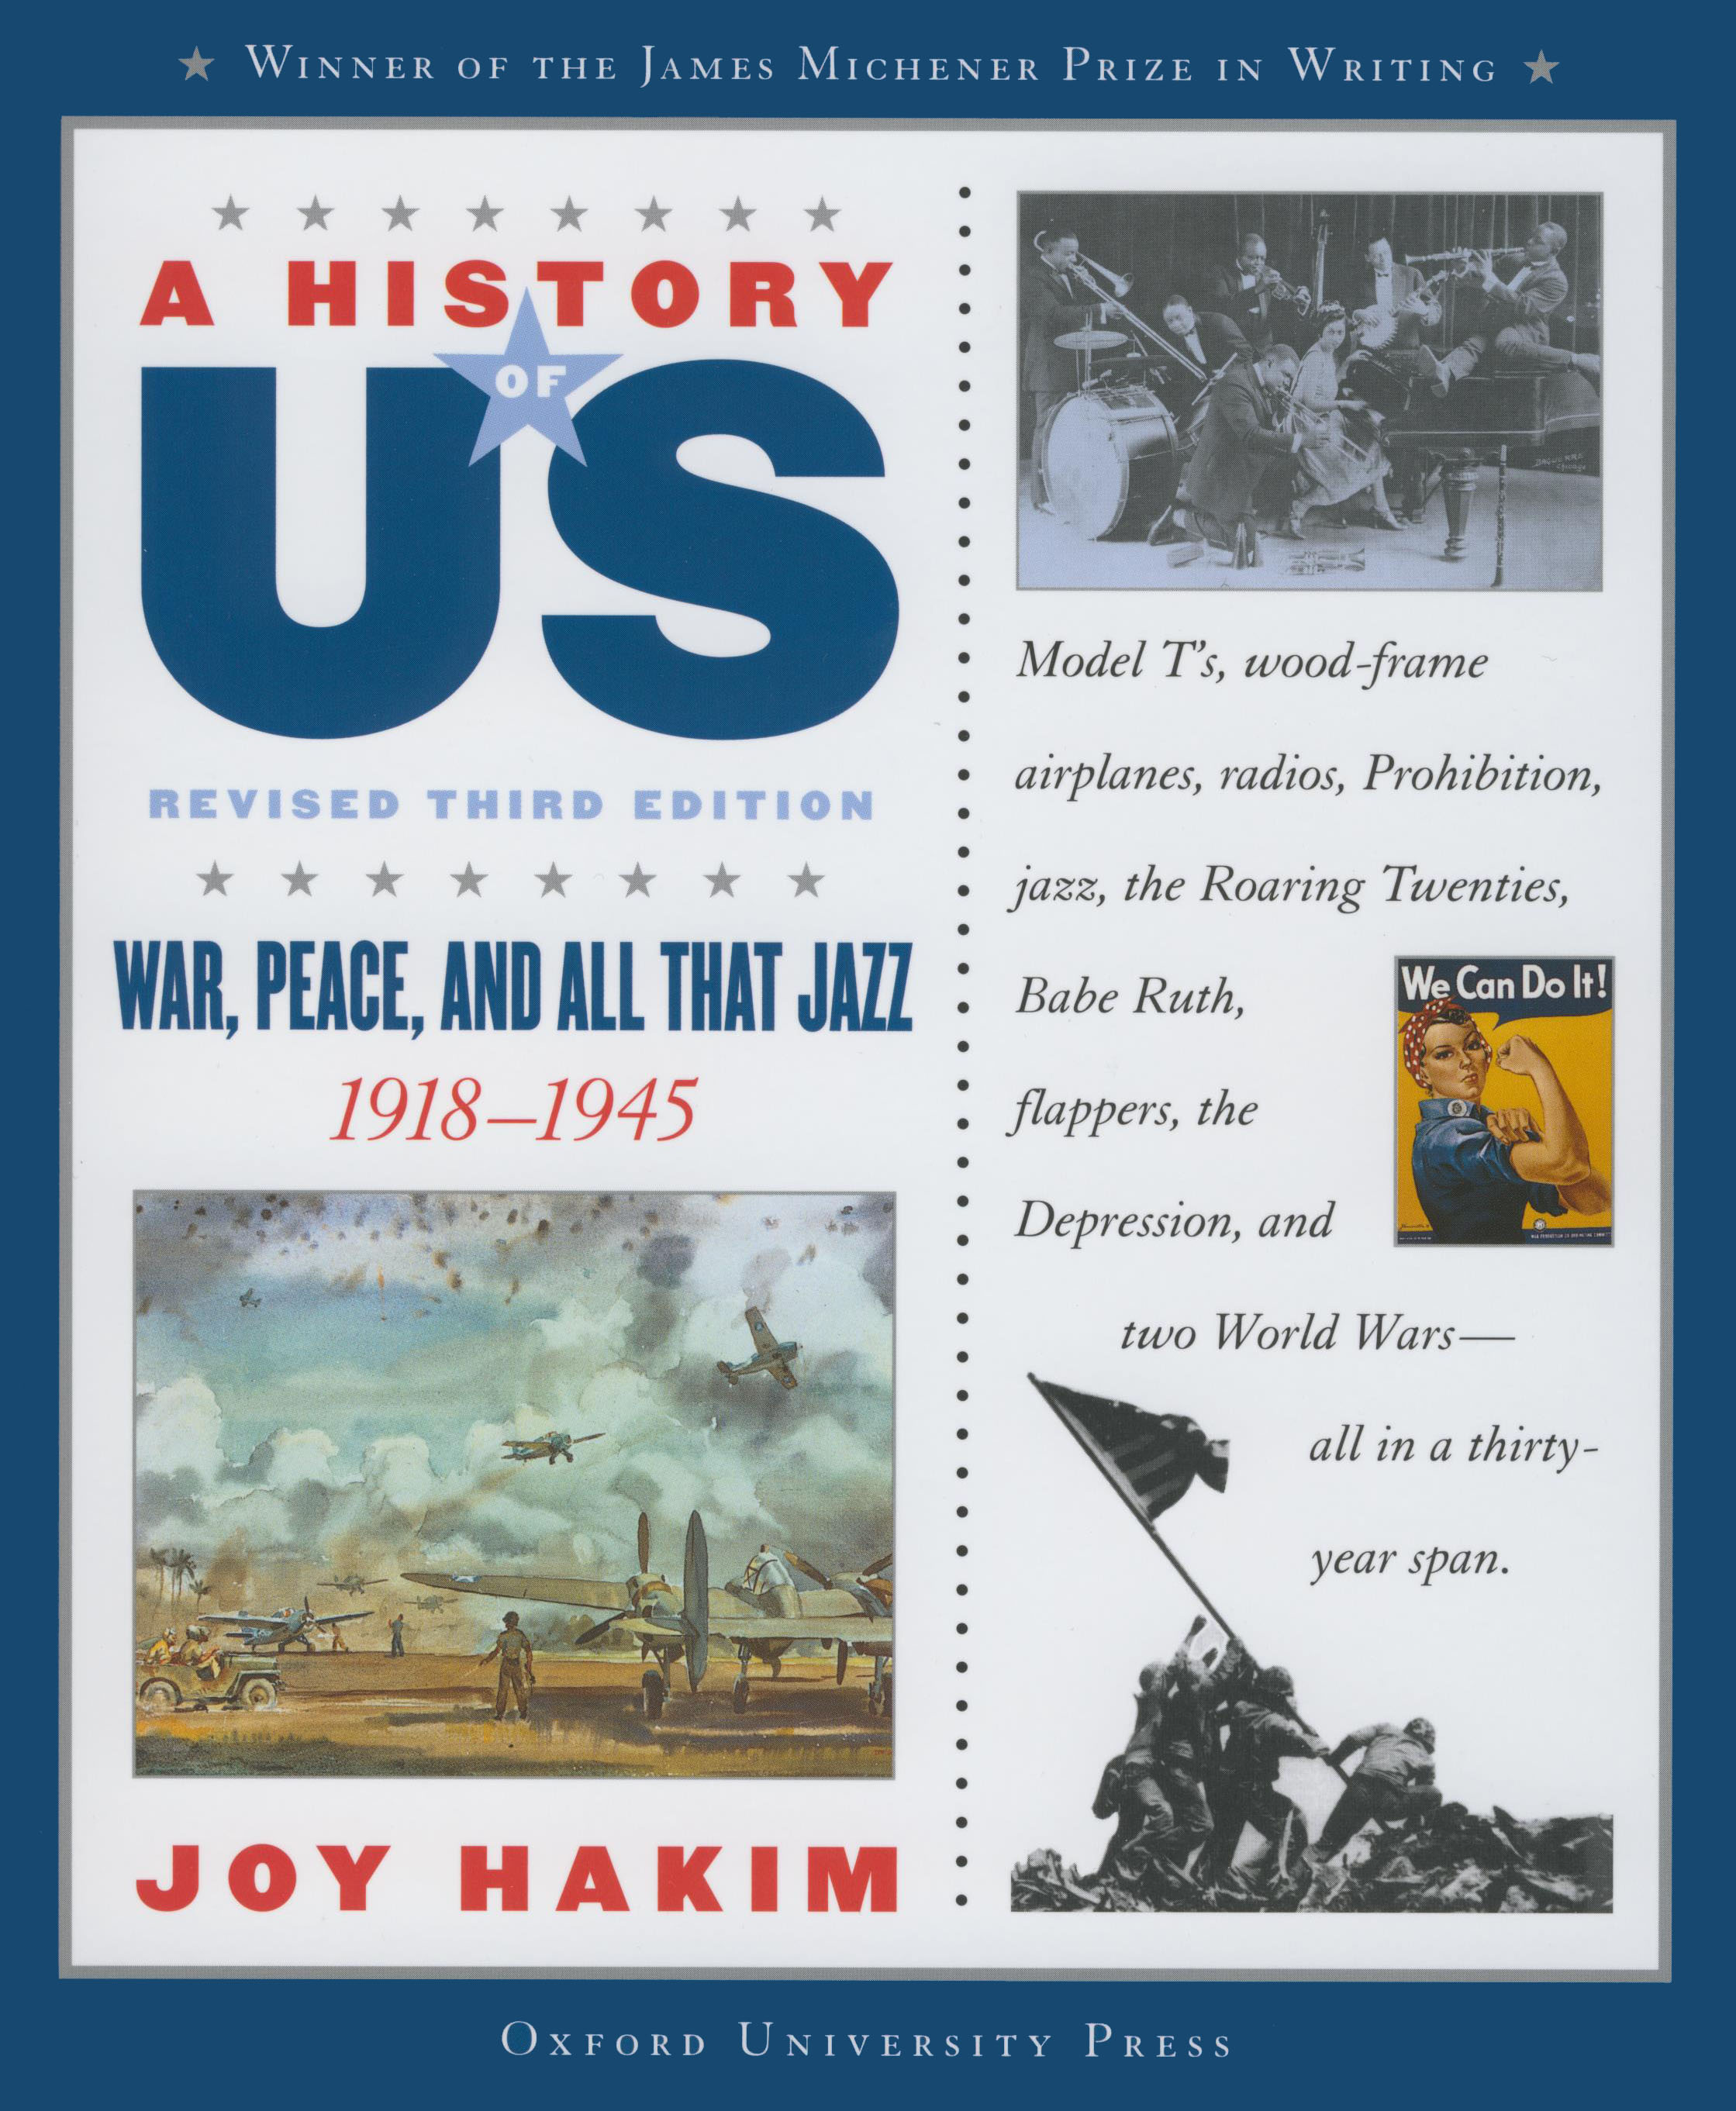 A History of US: War, Peace and All That Jazz, 1918-1945